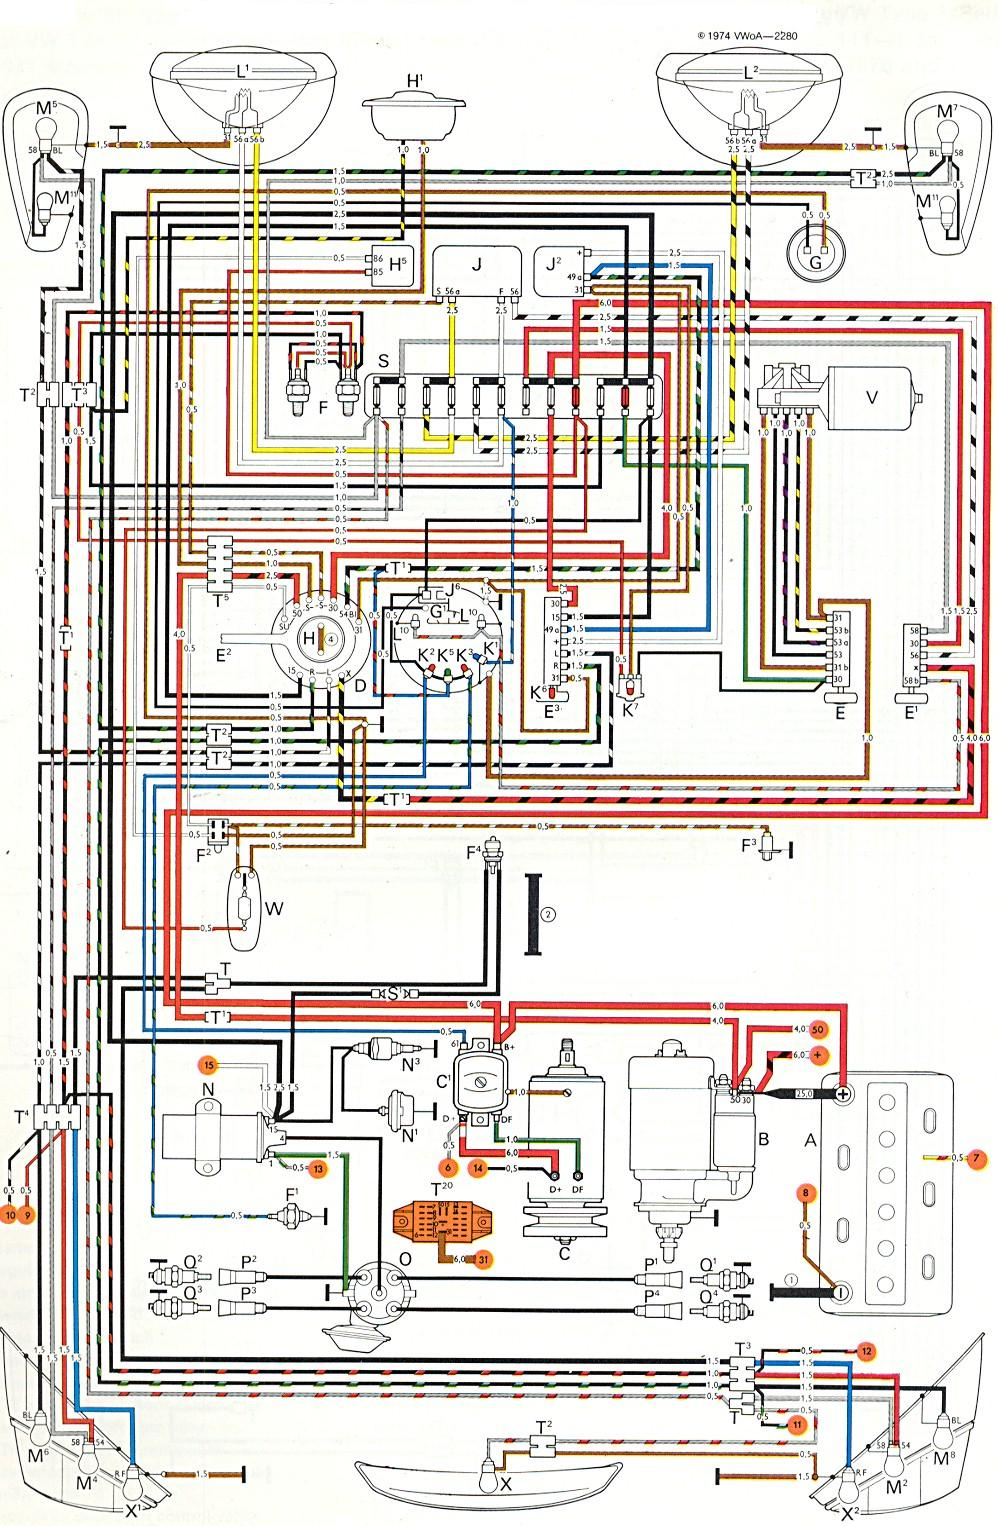 Vw Wiring Harness Diagram Just Another Blog Diagrams For 2006 Jetta Door 71 Rh Casamario De 2001 Passat Radio 2003